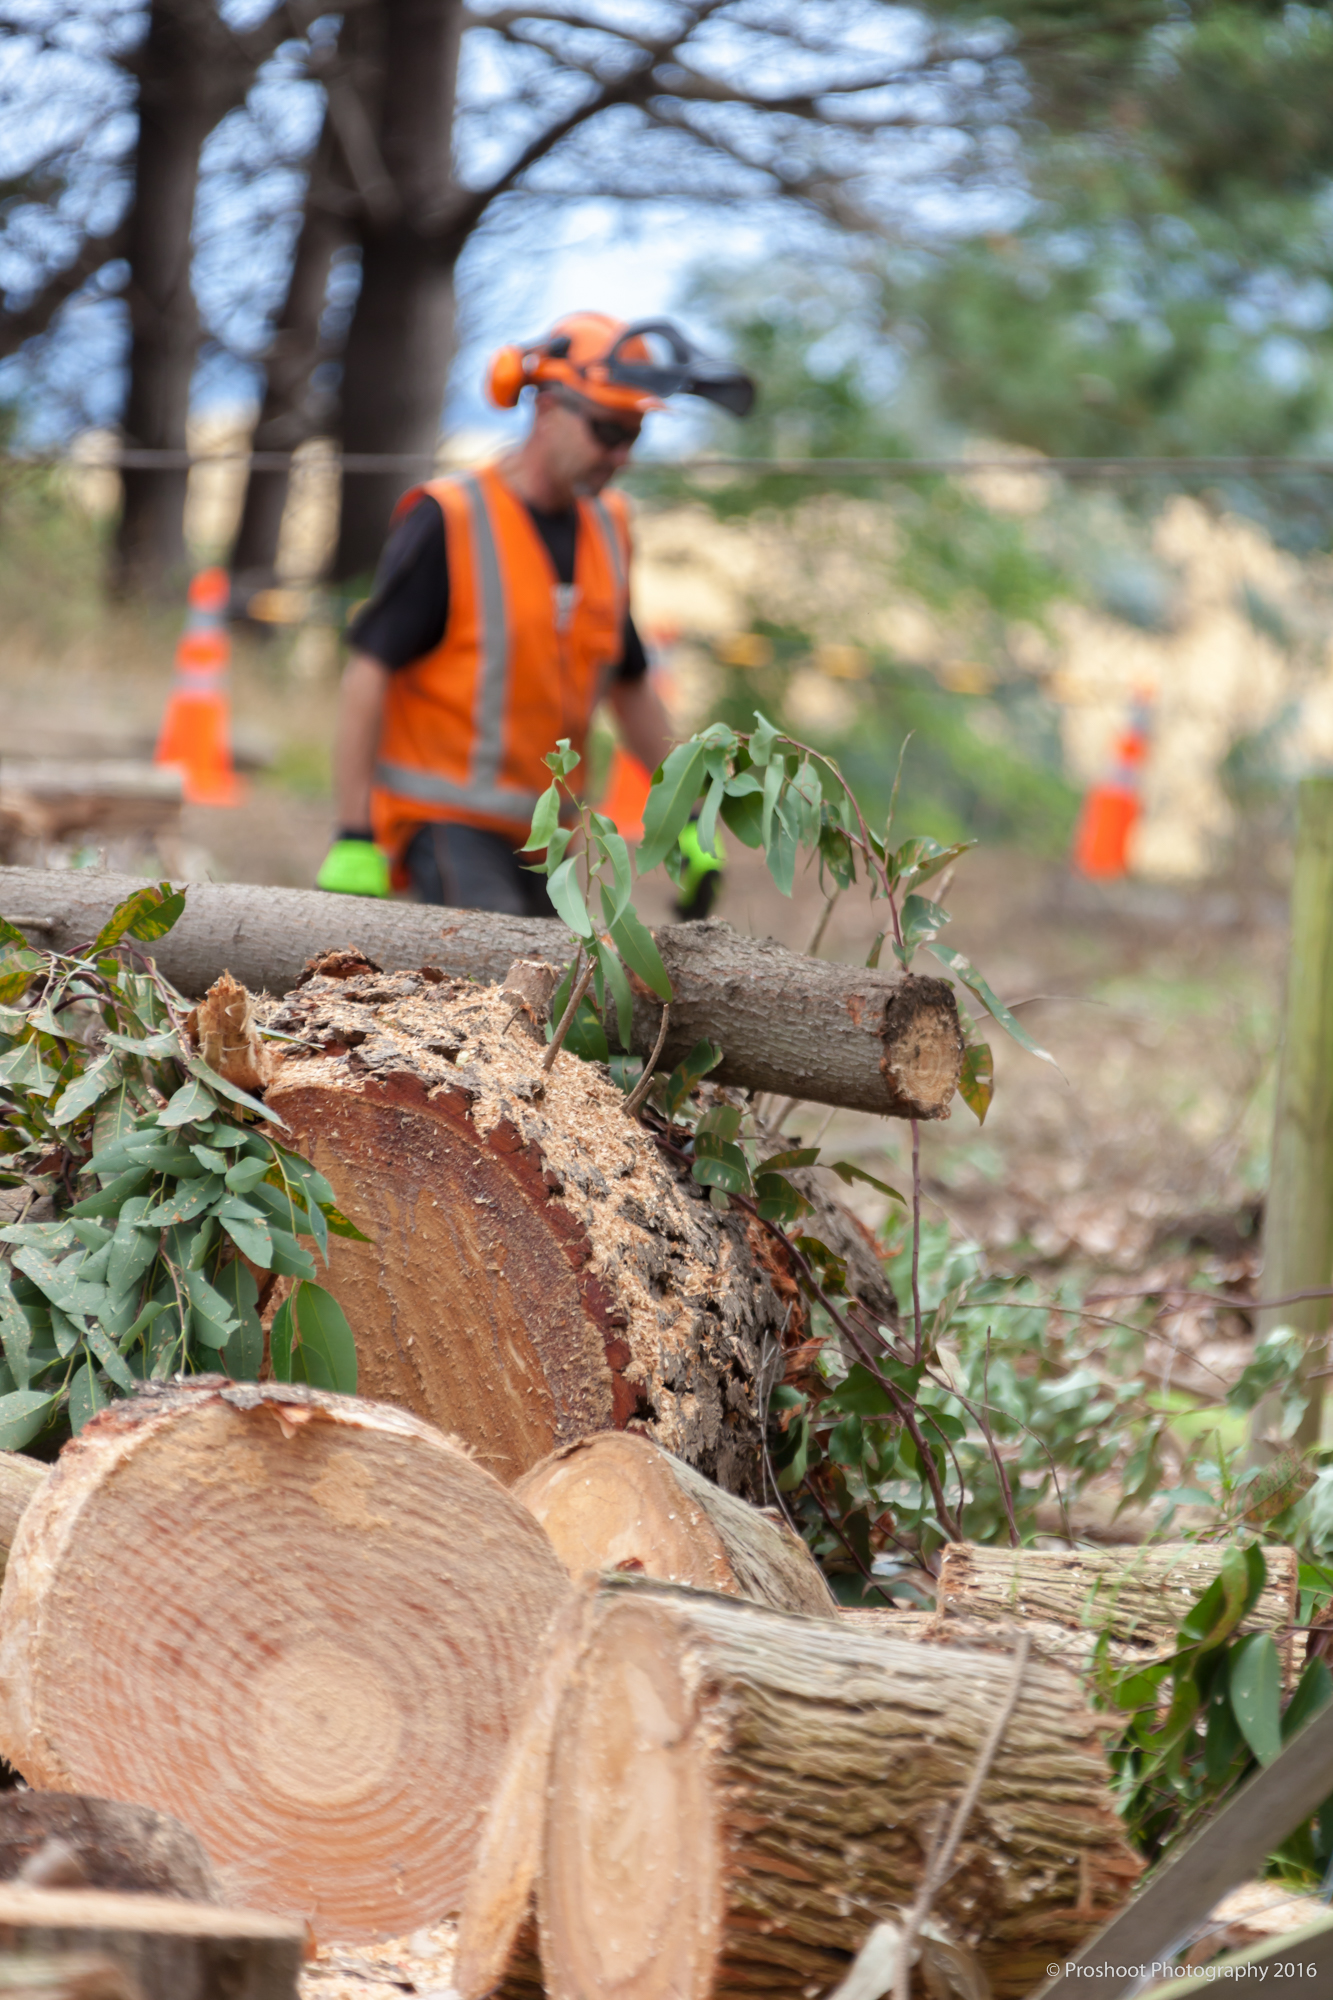 Agricontracts QE2 Tree Felling 6680